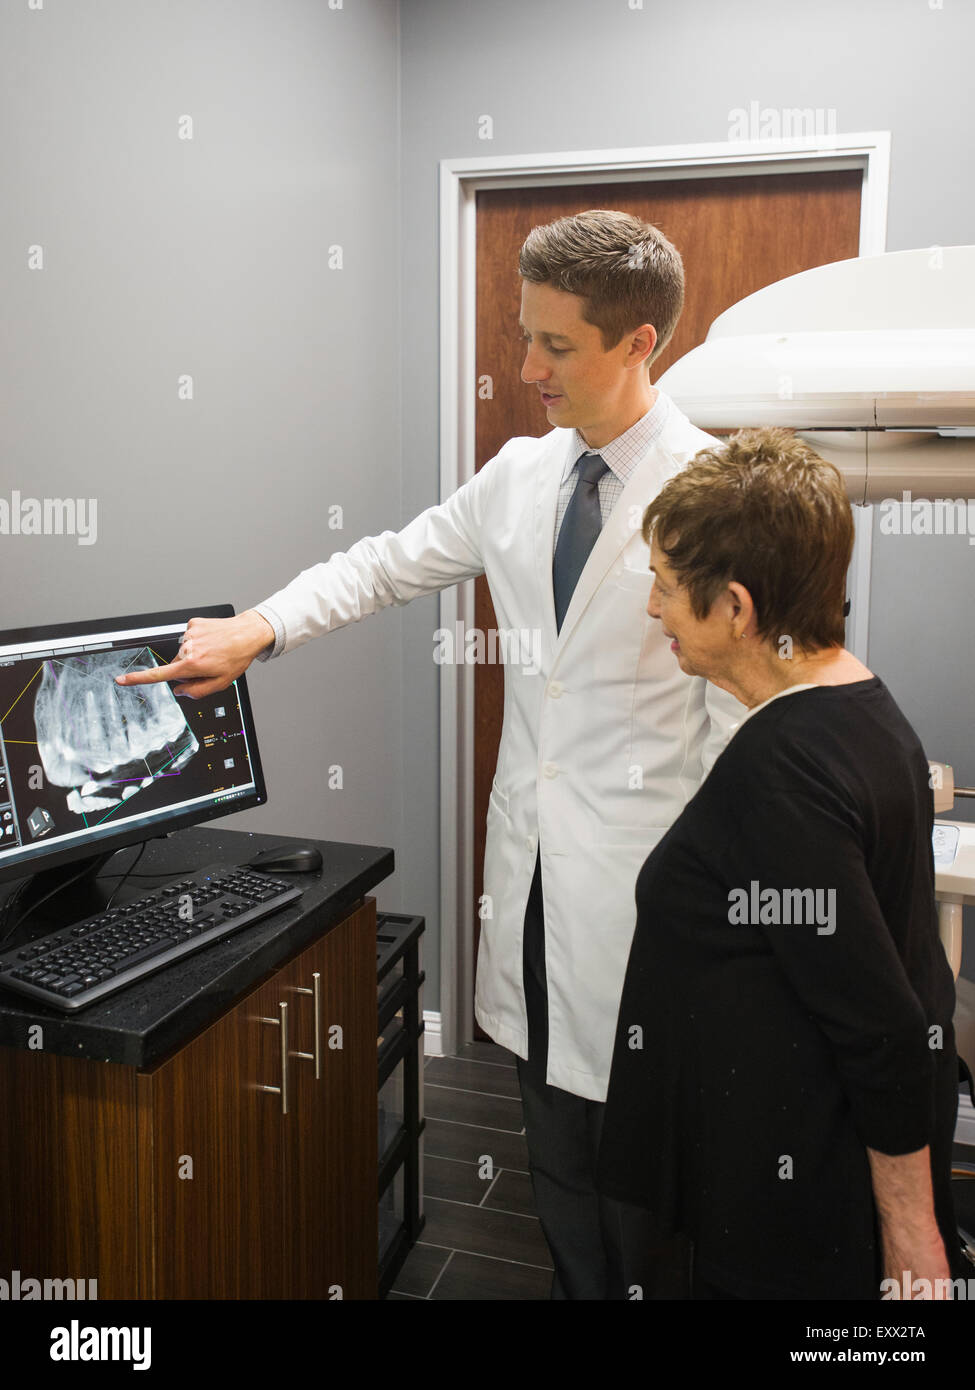 Dentist showing patient x-ray on computer screen - Stock Image